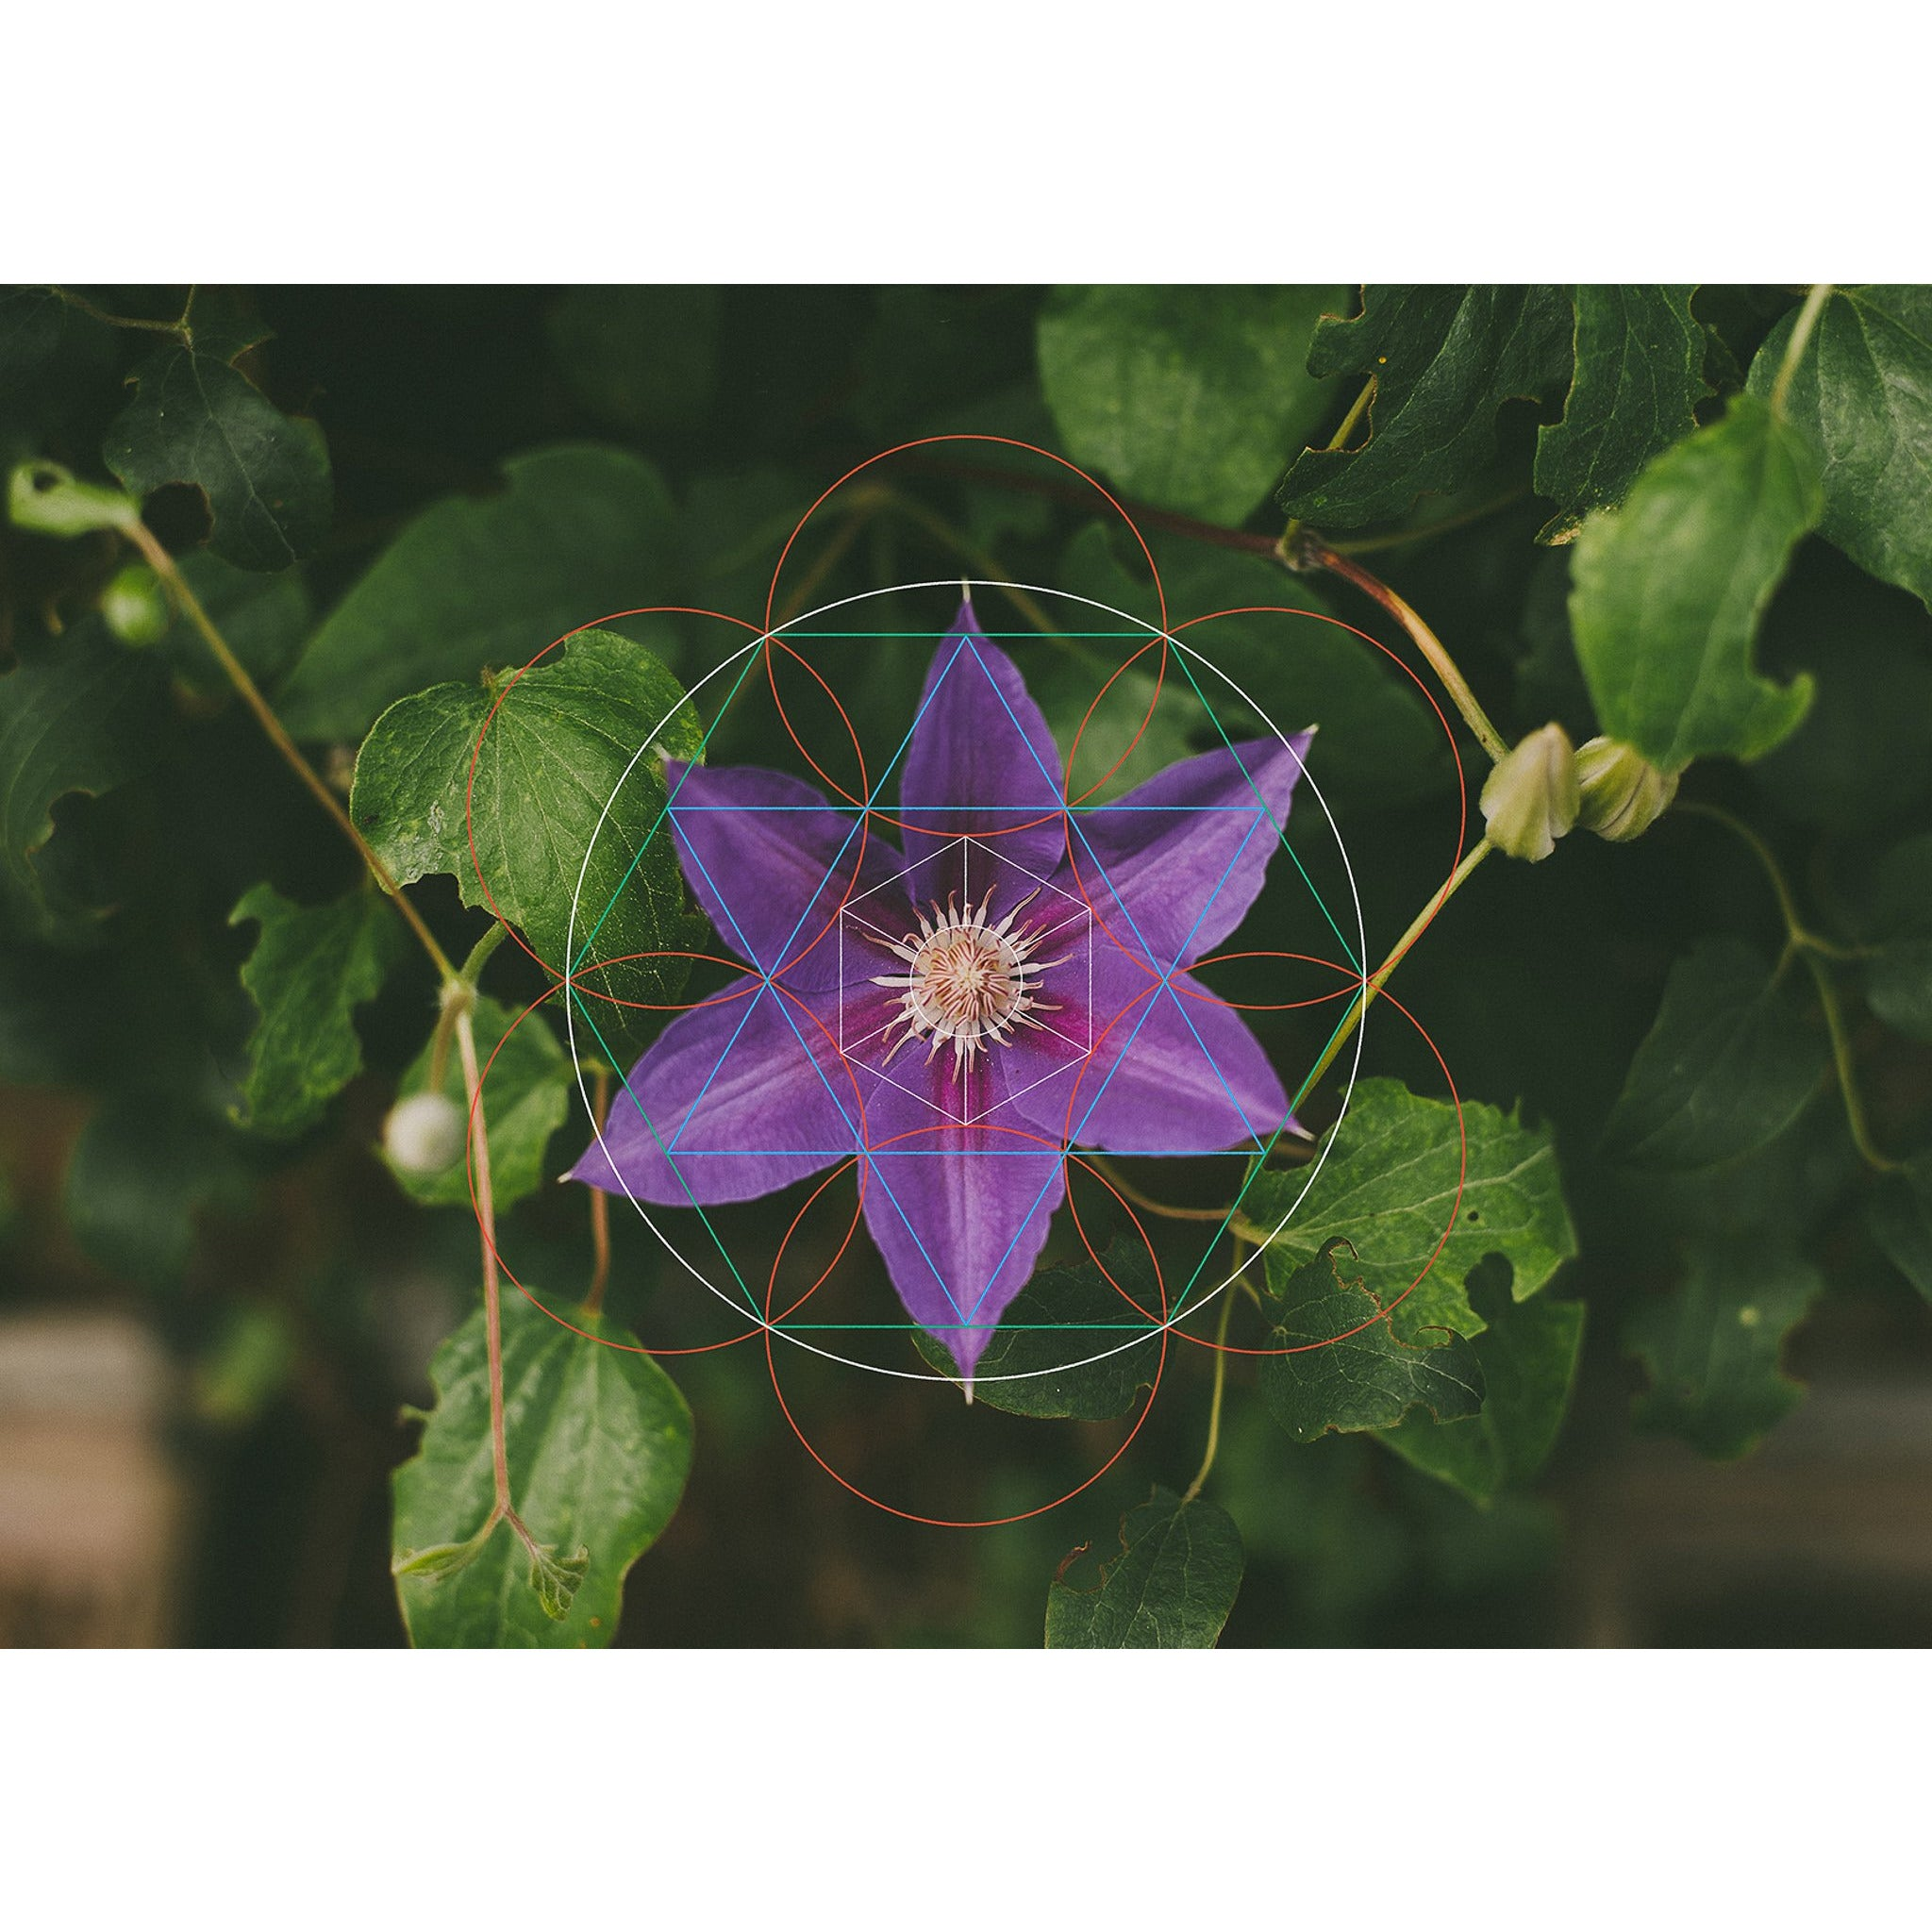 Purple Flower (name unknown) - Botanical Geometry Study